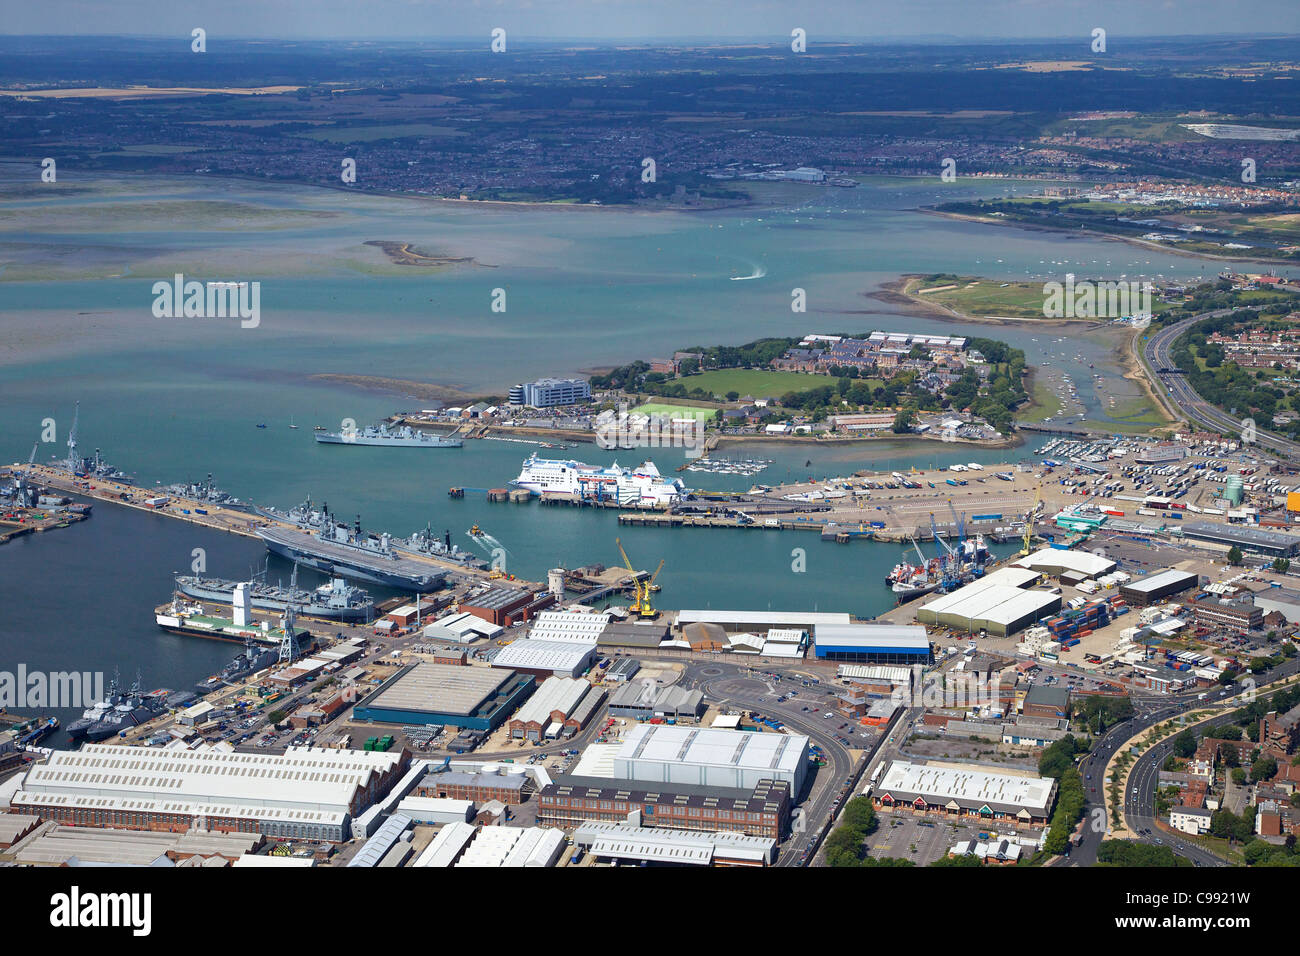 Aerial photo of 	HMNB Portsmouth, Solent, south coast, Hampshire, England, UK, United Kingdom, GB, Great Britain, - Stock Image